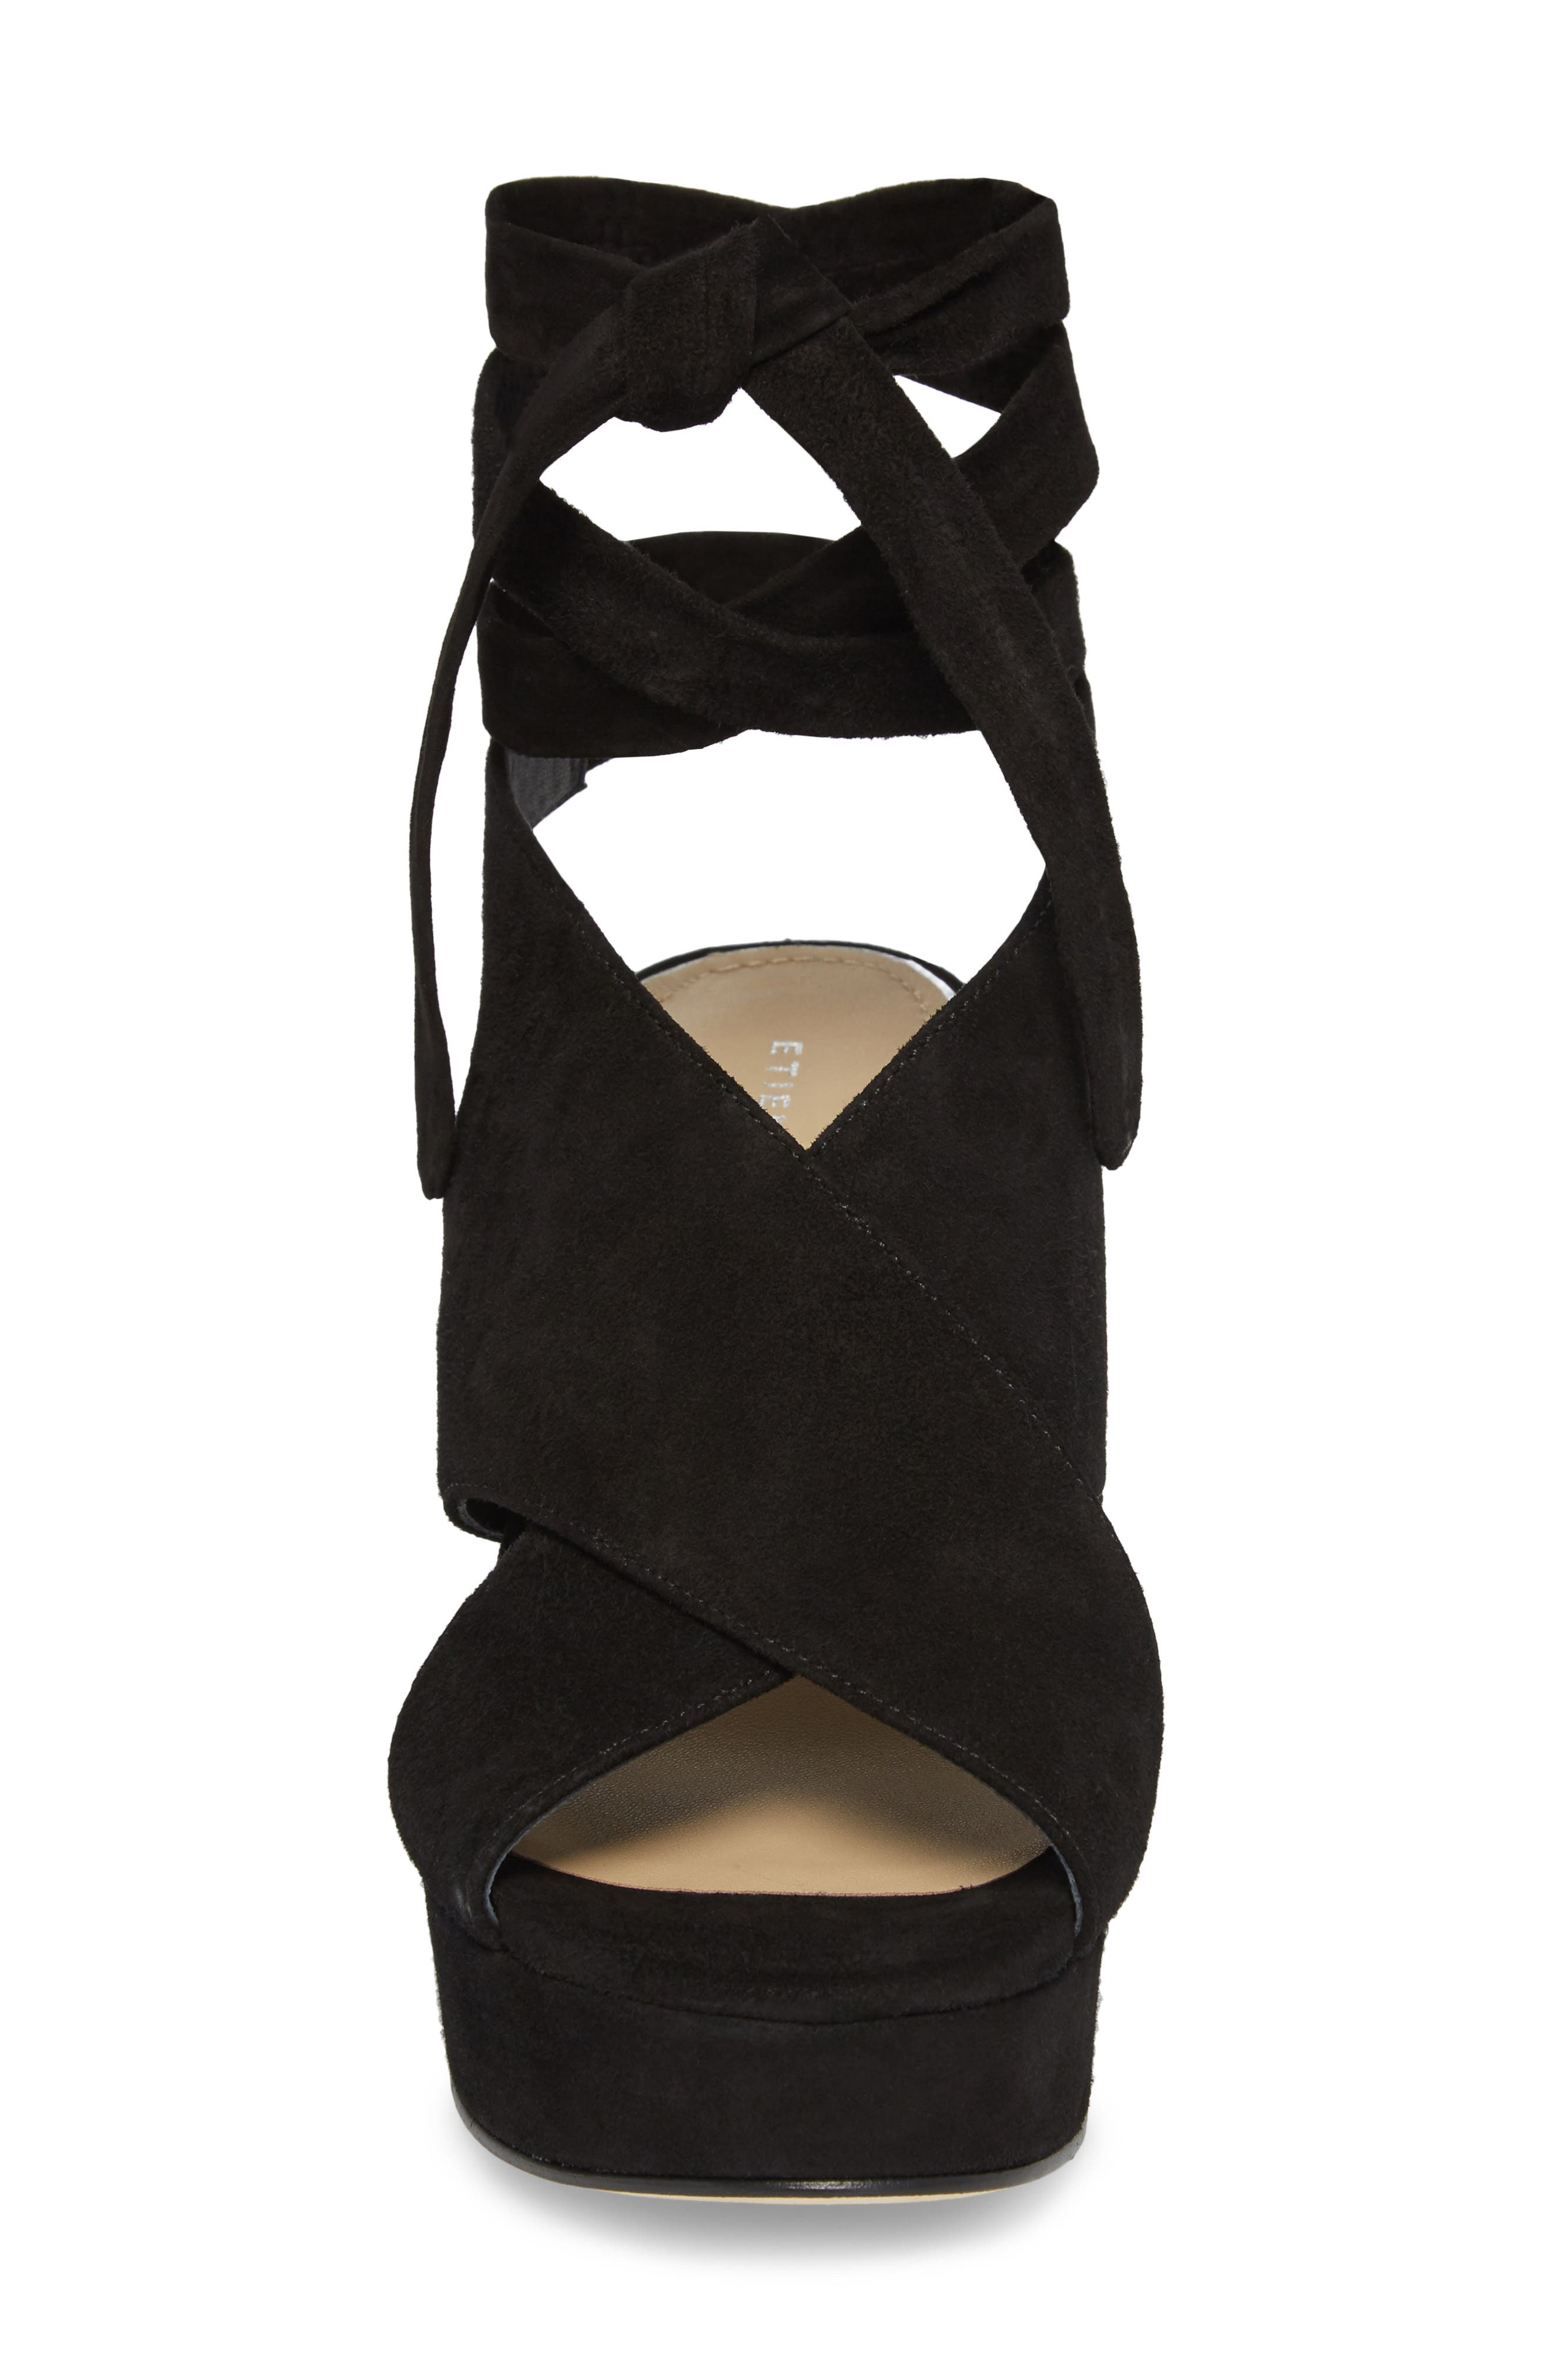 Dominica Platform Wedge Sandal,                             Alternate thumbnail 4, color,                             BLACK SUEDE